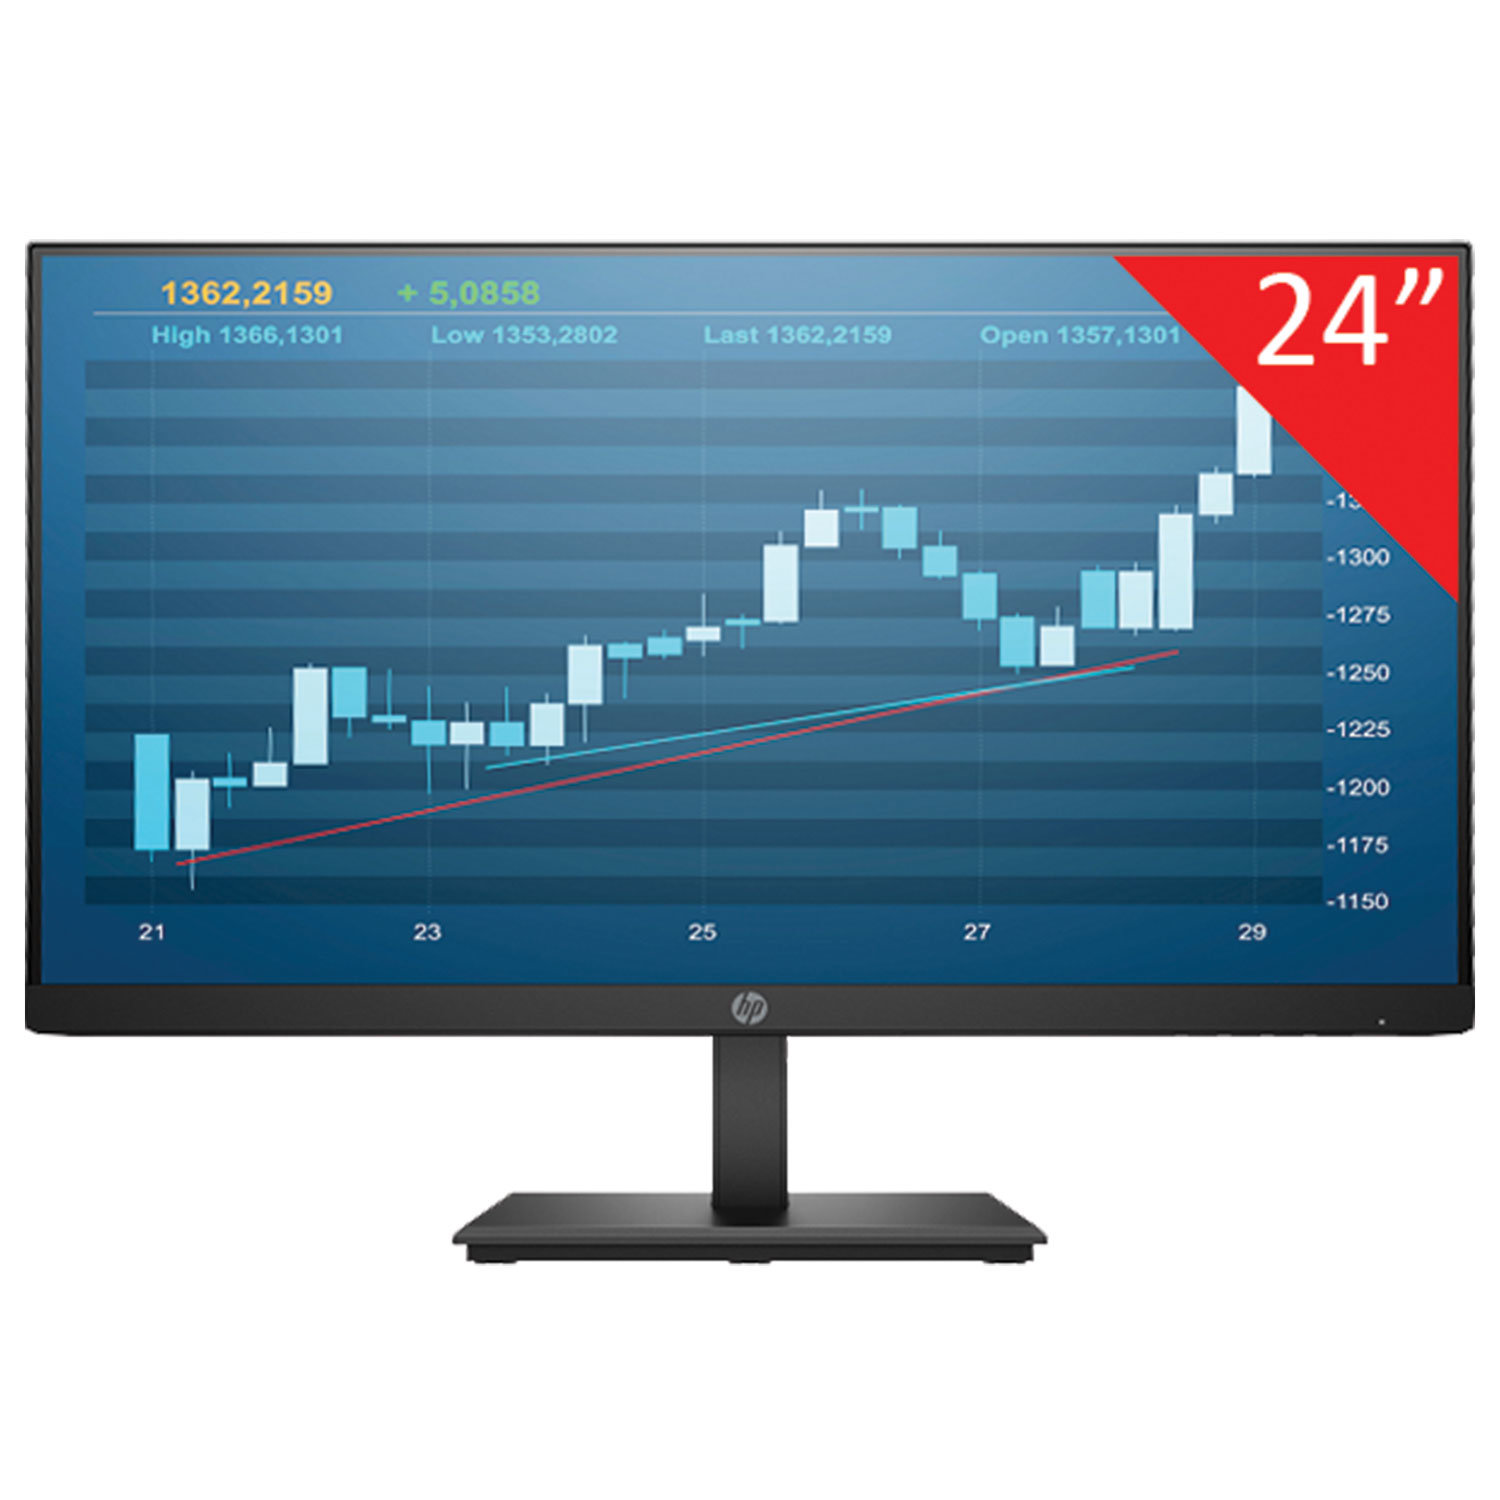 "Монитор HP P244 24"" (61 см), 1920x1080, 16:9, IPS, 5 ms, 250 cd, HDMI, VGA, DP, черный"